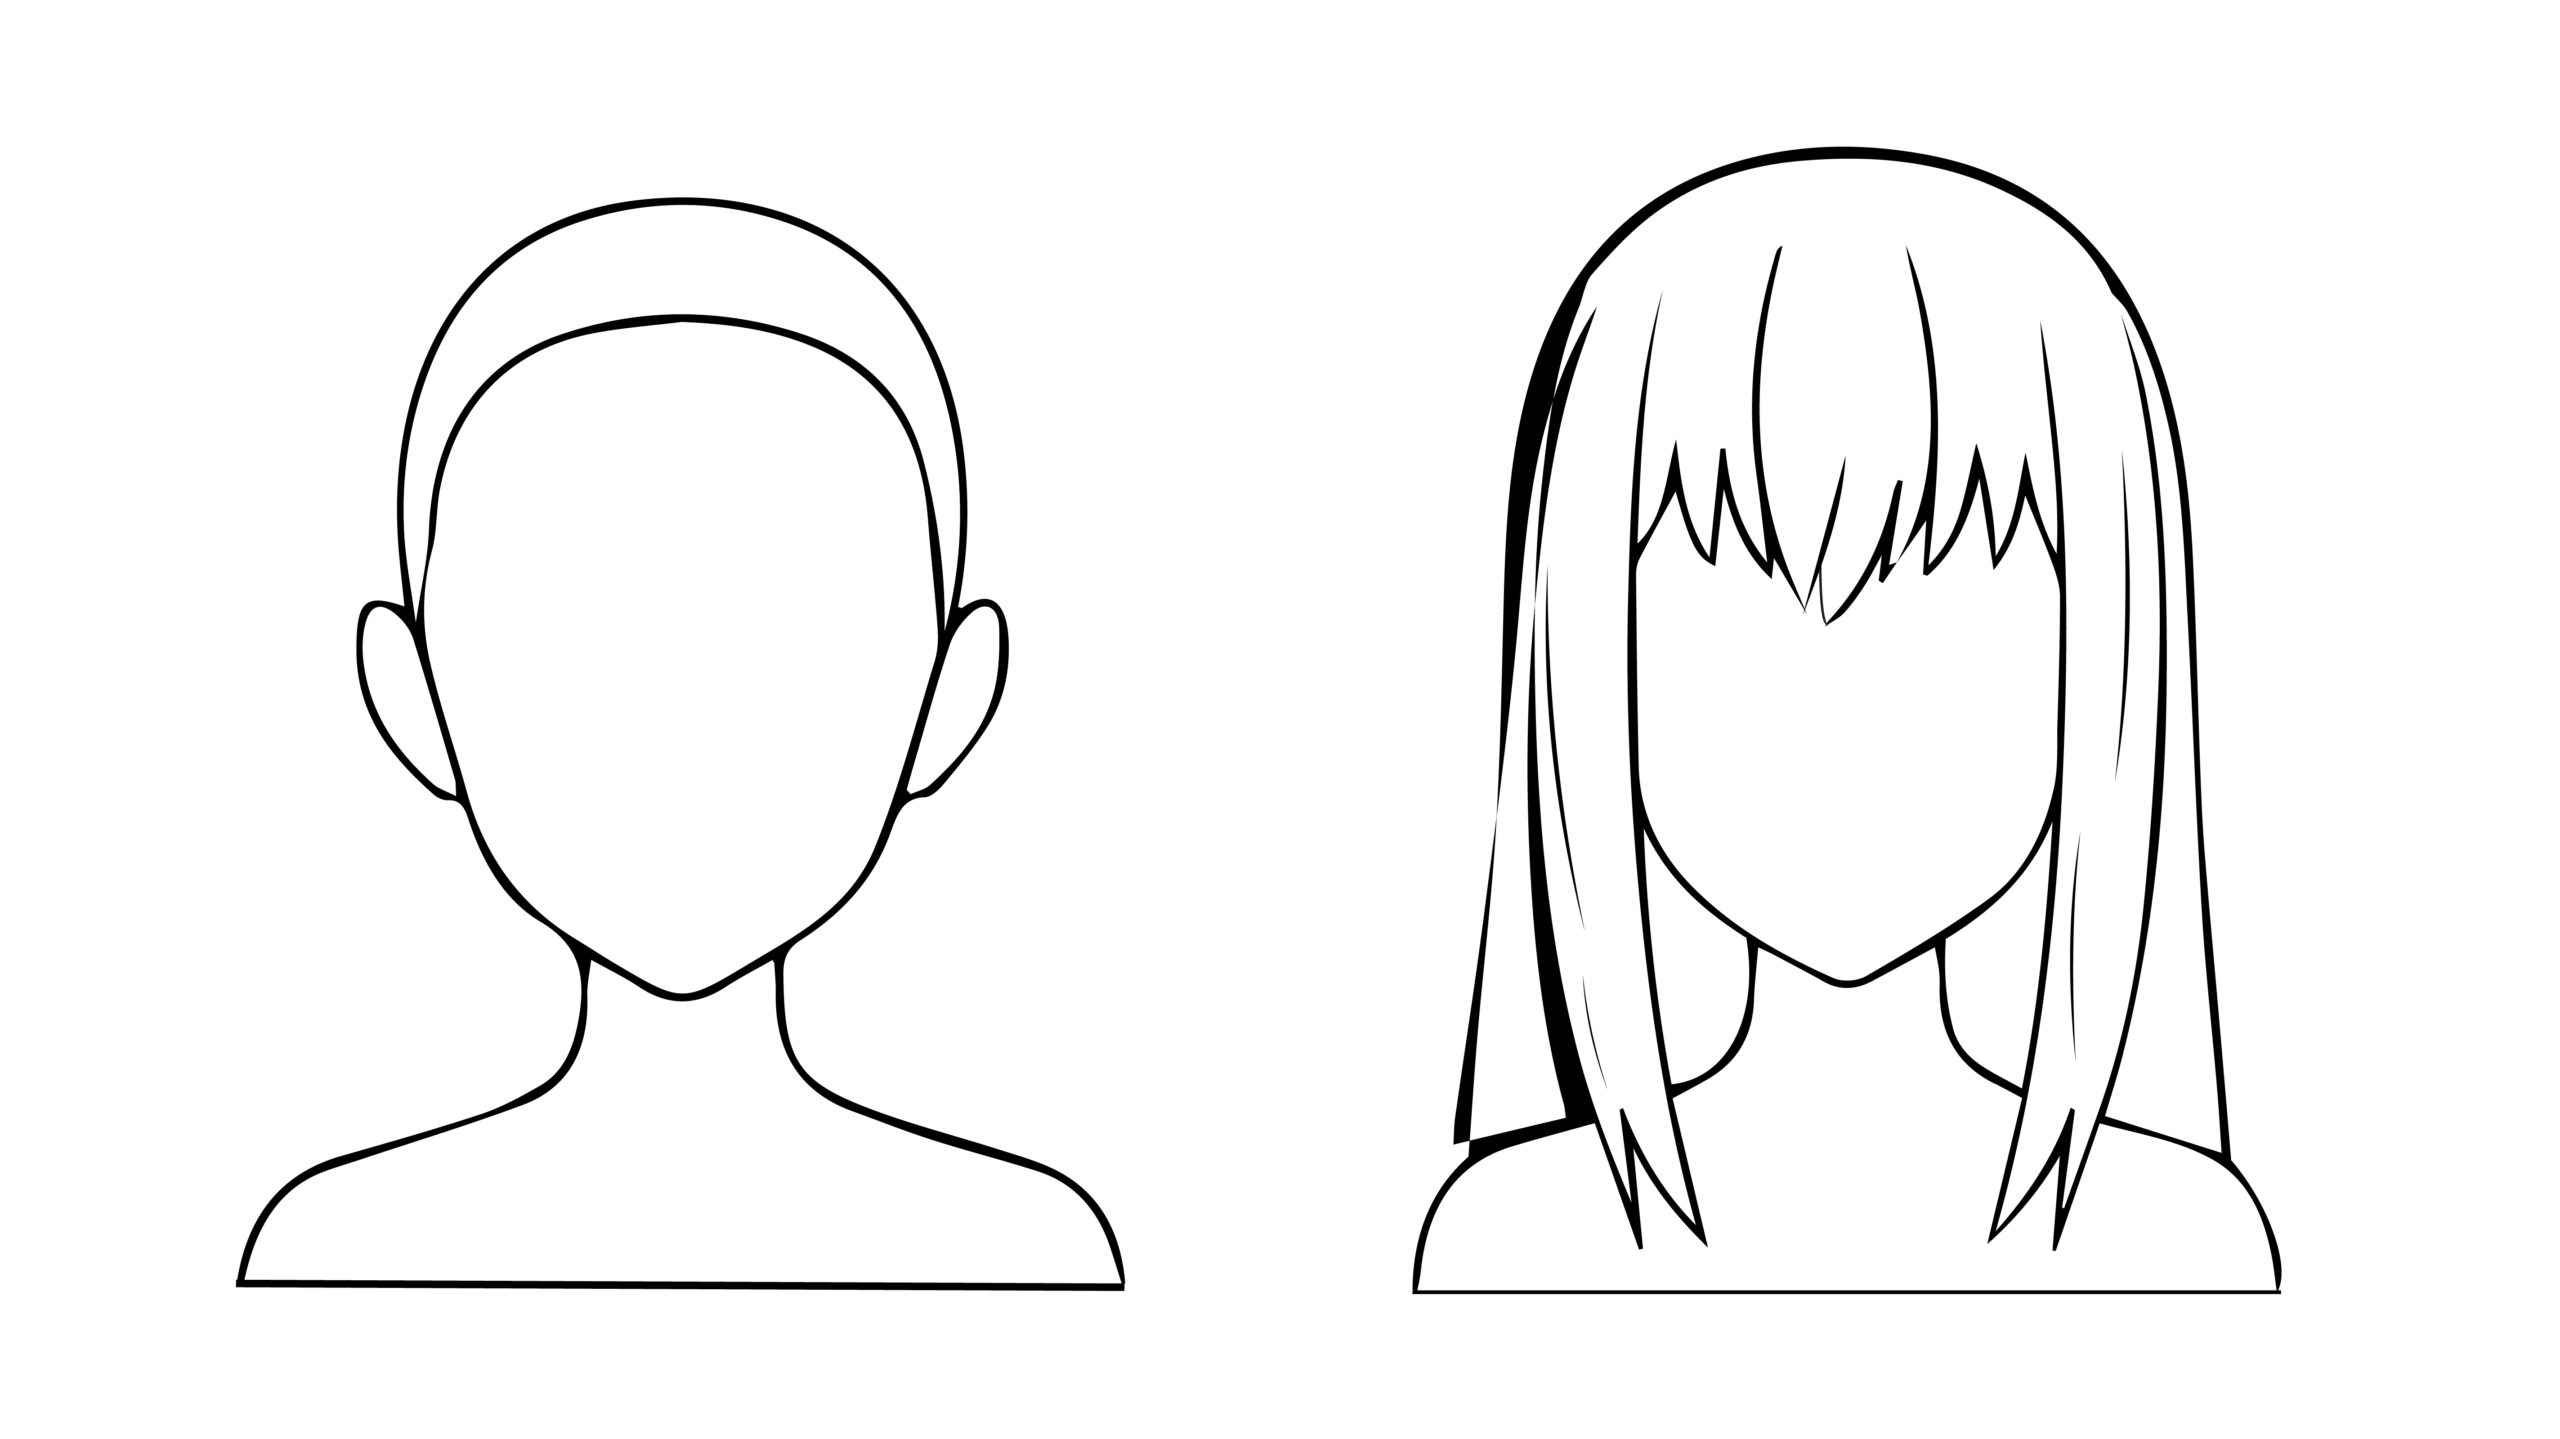 how to draw an anime girl step by step how to draw anime and manga hair female in 2020 manga how an anime draw girl step to by step